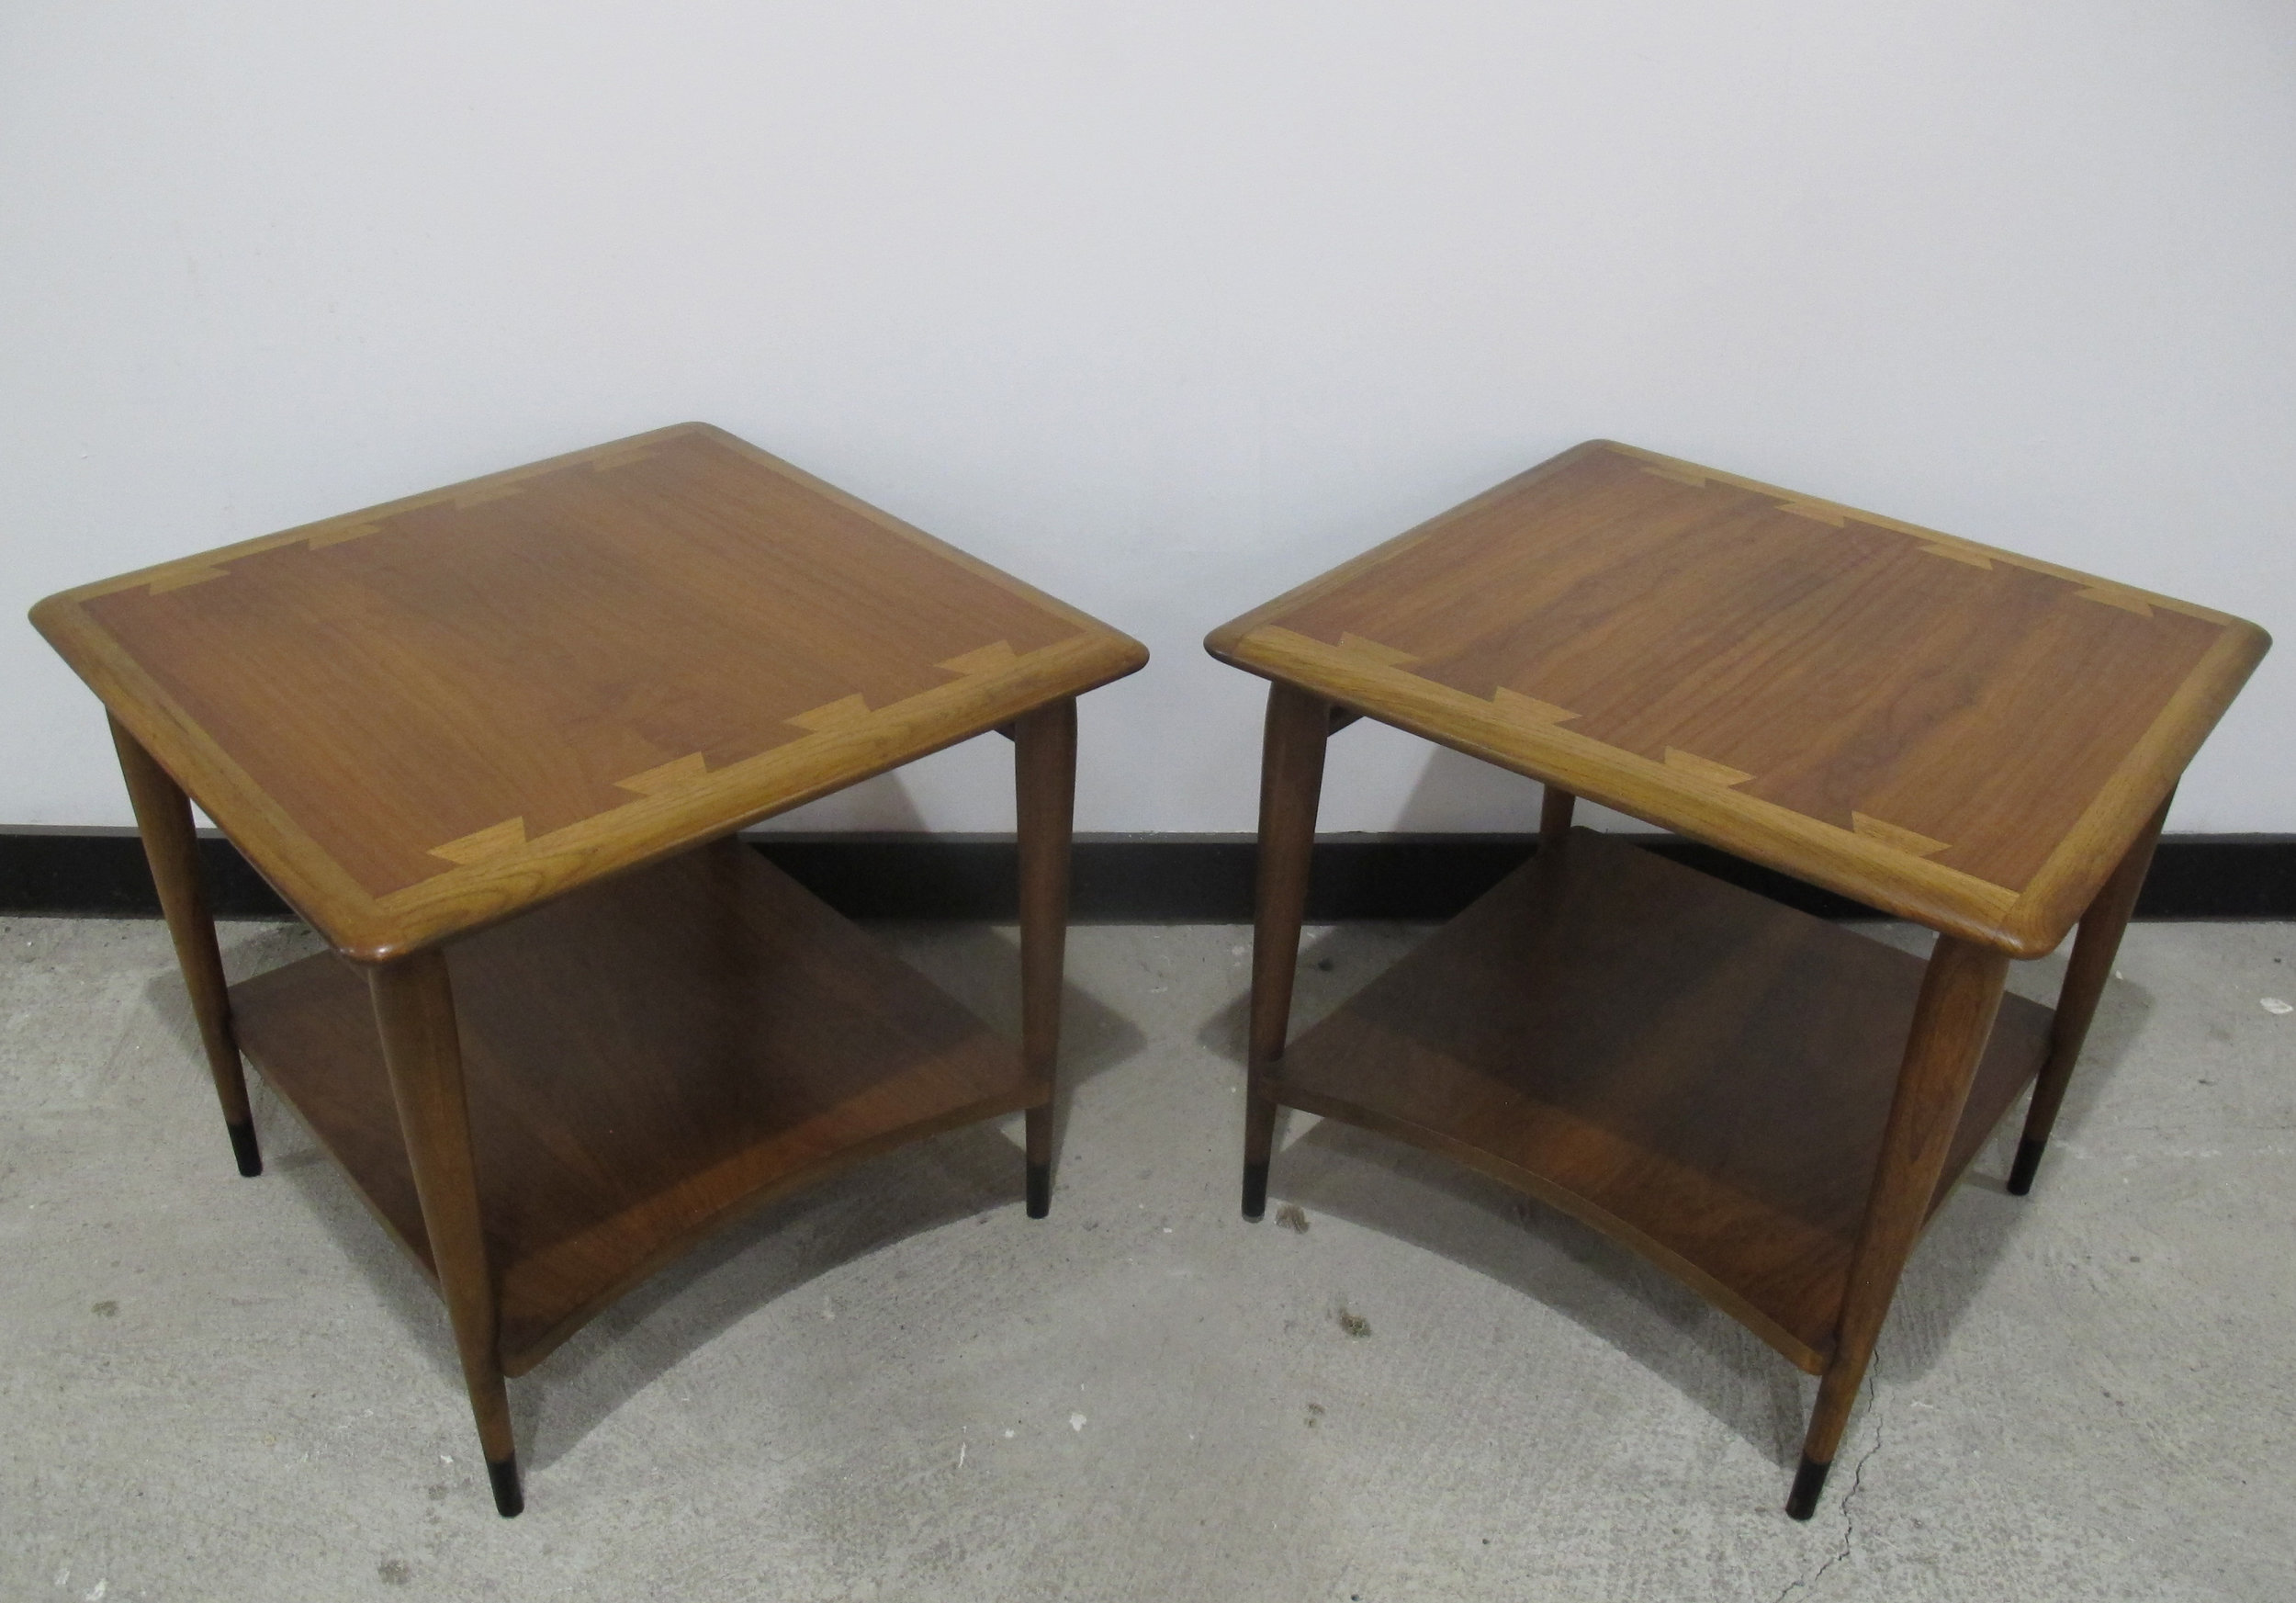 MID CENTURY TWO-TIER WALNUT END TABLES BY LANE